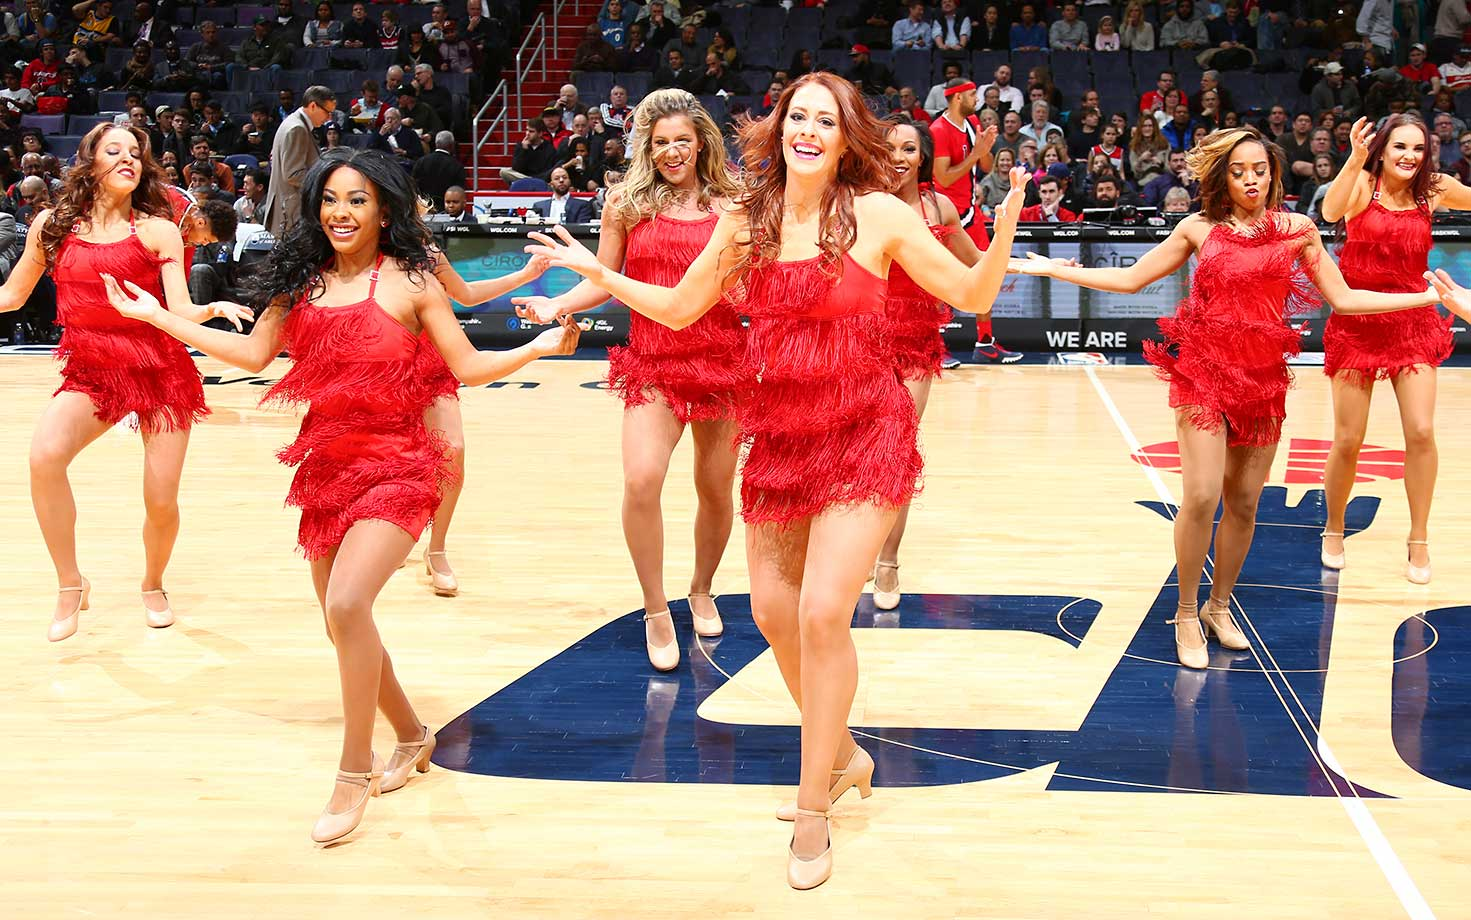 The Washington Wizards dance team is seen during the game against the Denver Nuggets at Verizon Center in Washington, D.C.